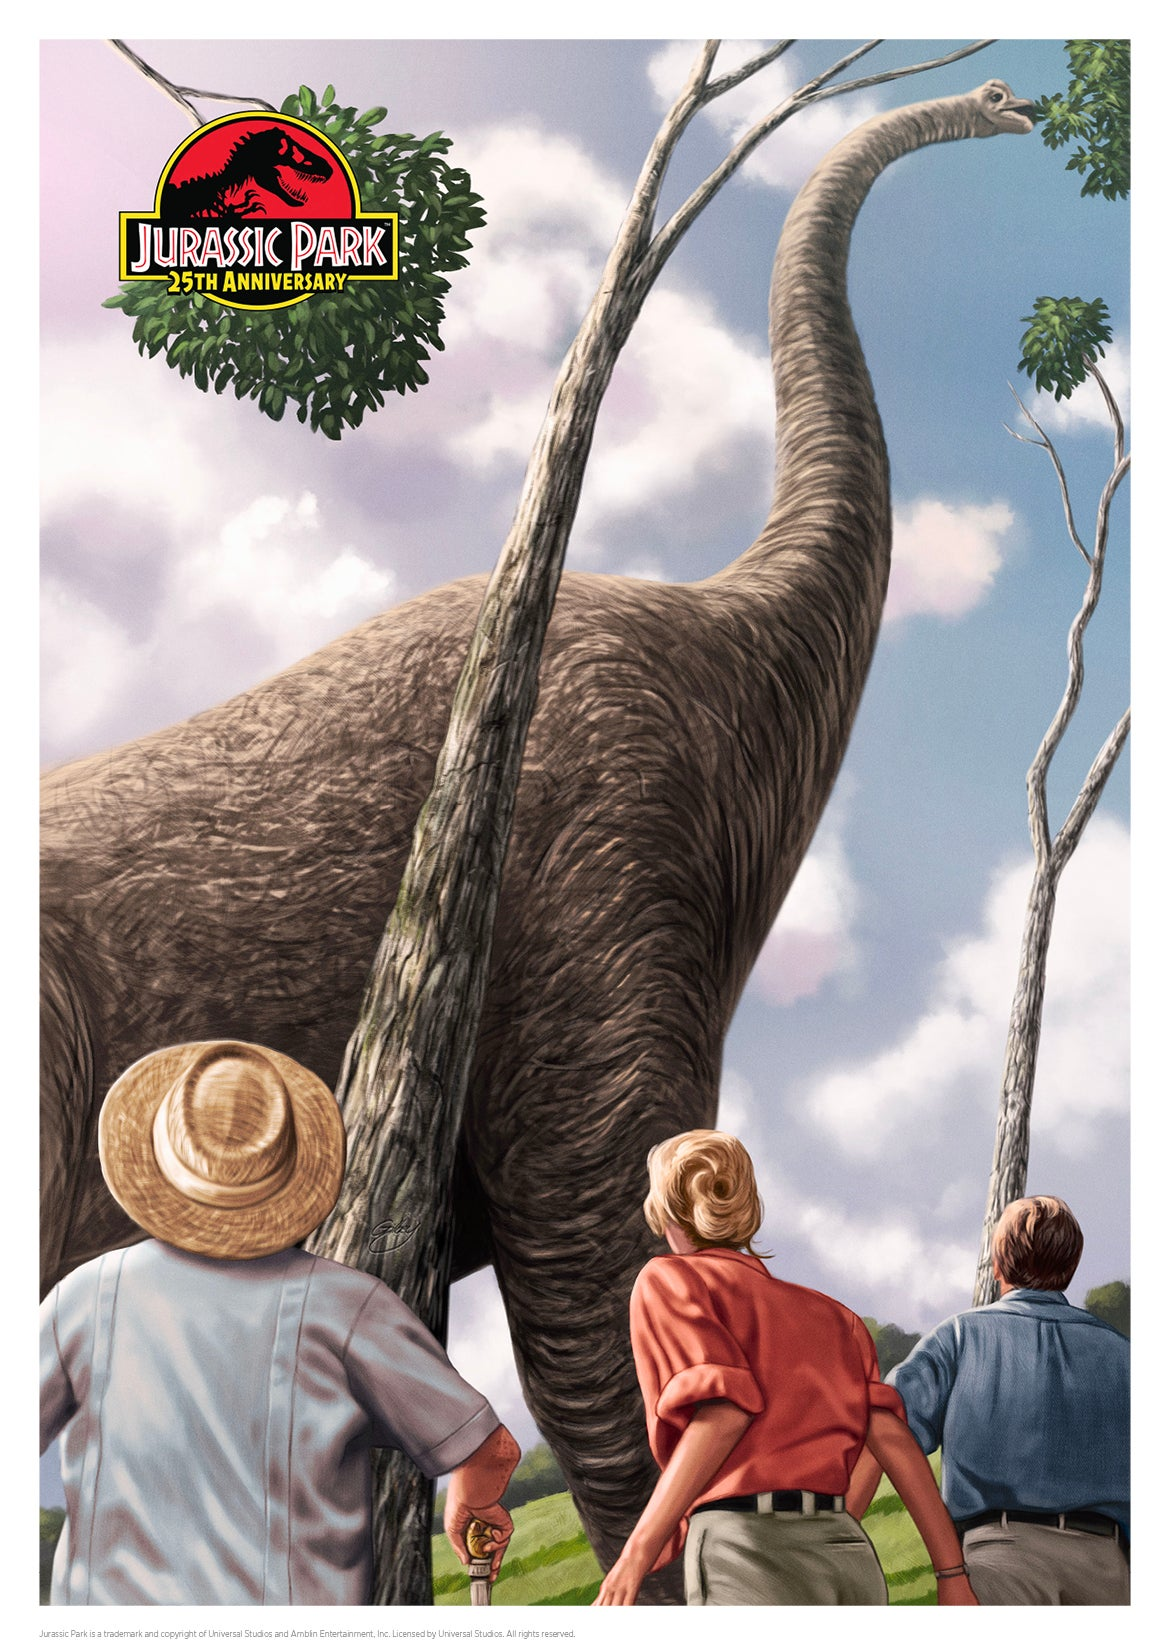 Image of Jurassic Park A3 (officially licensed artist proof copies)